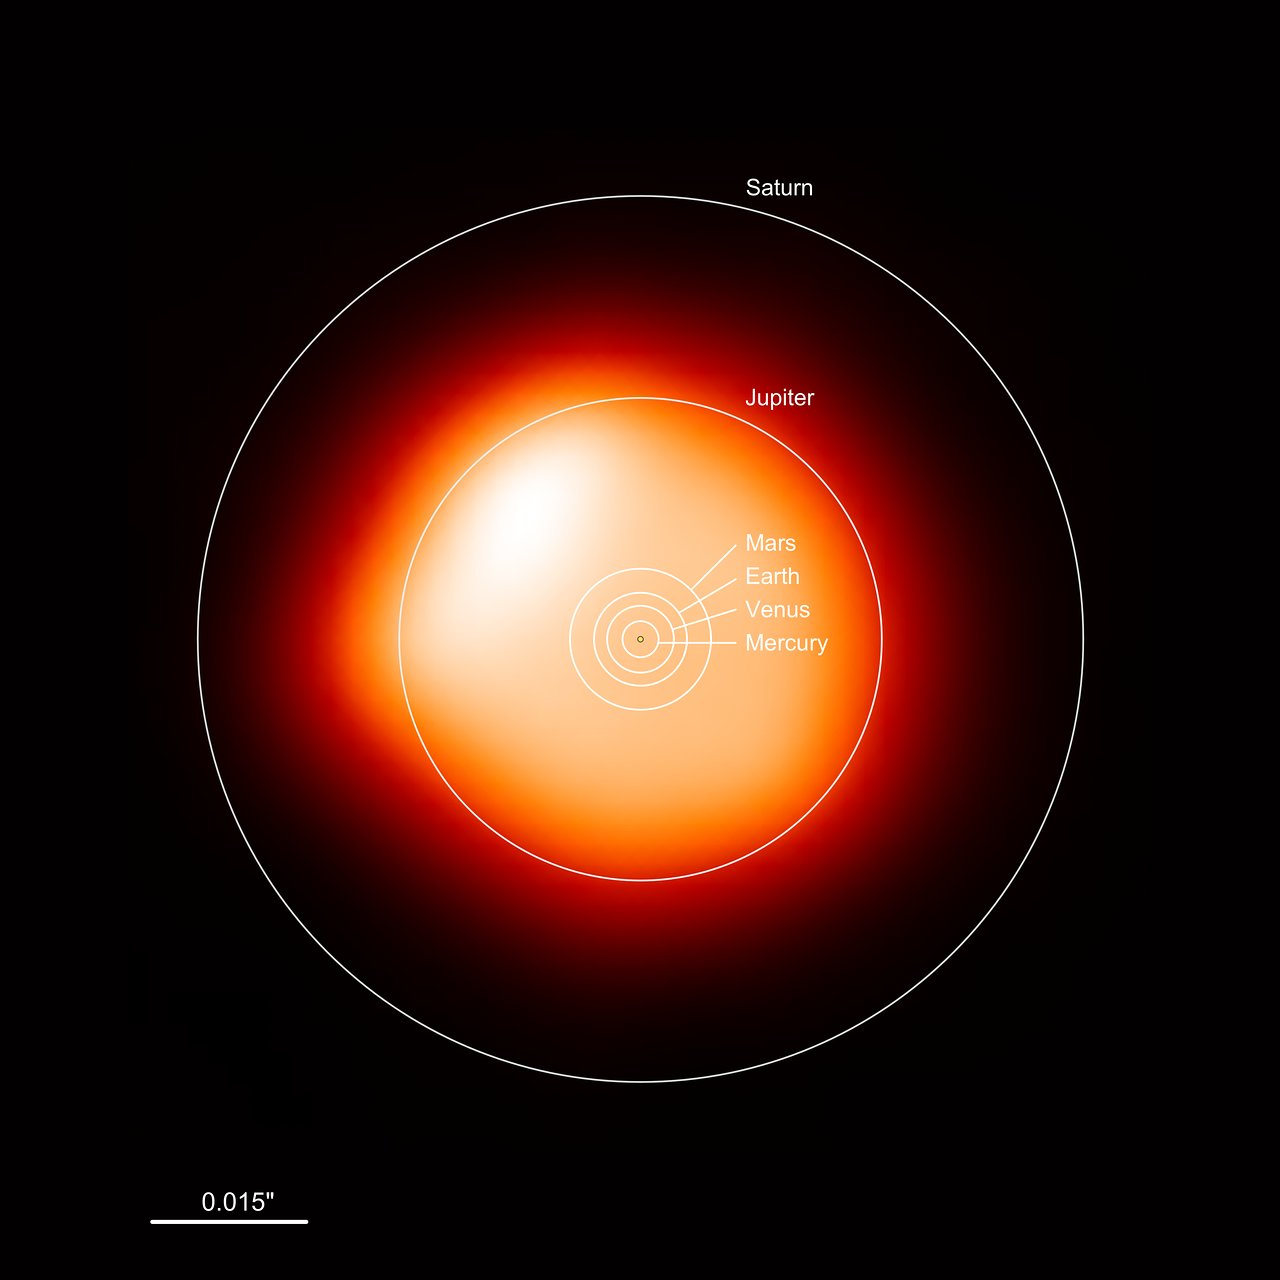 This image, made with the Atacama Large Millimeter/submillimeter Array (ALMA), shows the red supergiant Betelgeuse — one of the largest stars known. In the millimeter continuum the star is around 1400 times larger than our Sun. The overlaid annotation shows how large the star is compared to the Solar System. Betelgeuse would engulf all four terrestrial planets — Mercury, Venus, Earth and Mars — and even the gas giant Jupiter. Only Saturn would be beyond its surface. Link  Betelgeuse captured by ALMA